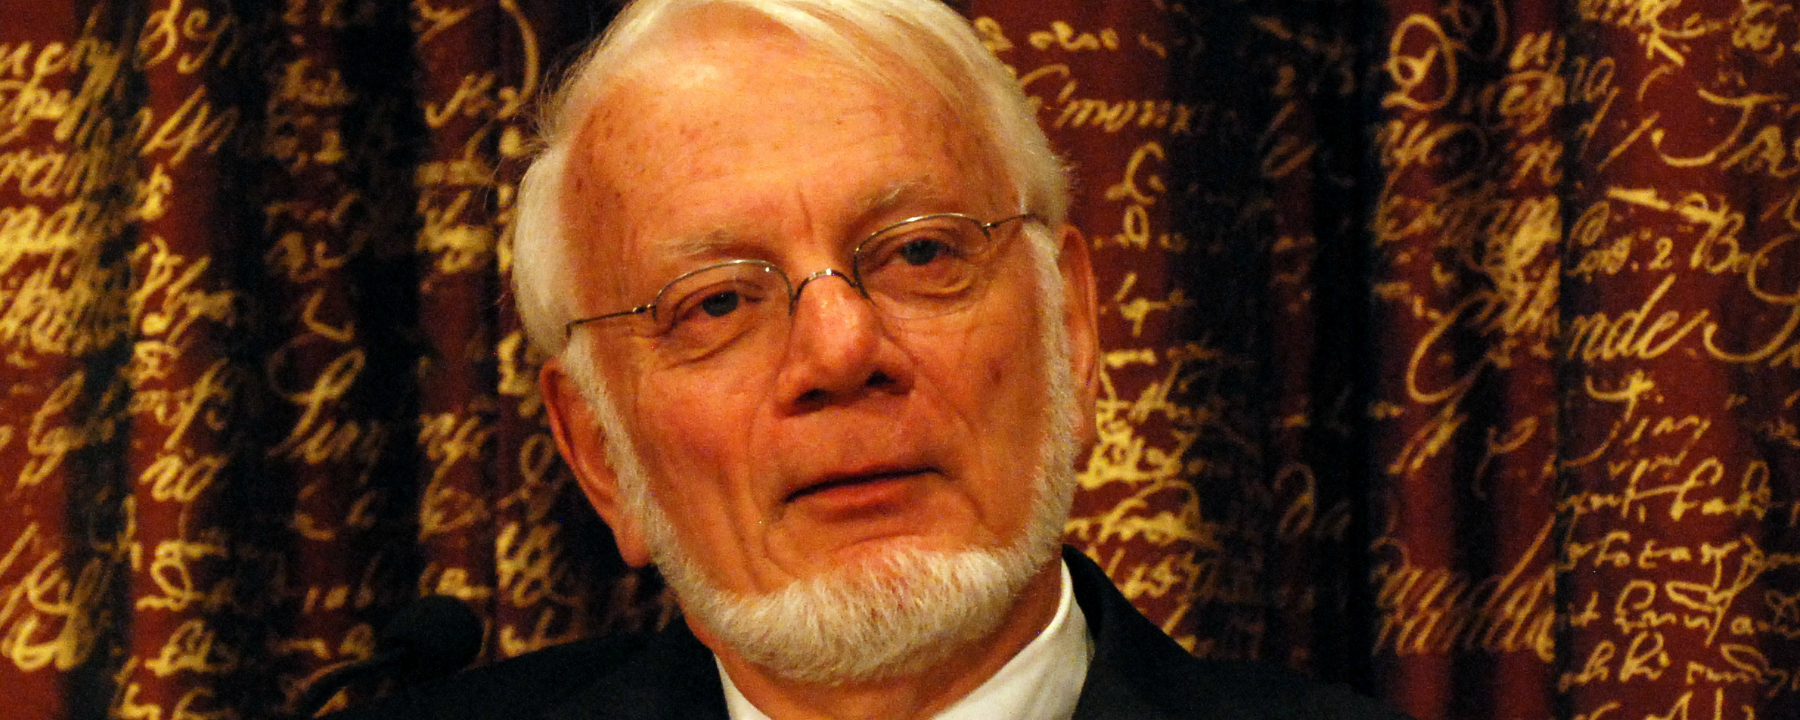 Thomas Steitz, Biologist and X-Ray Crystallographer, Dies